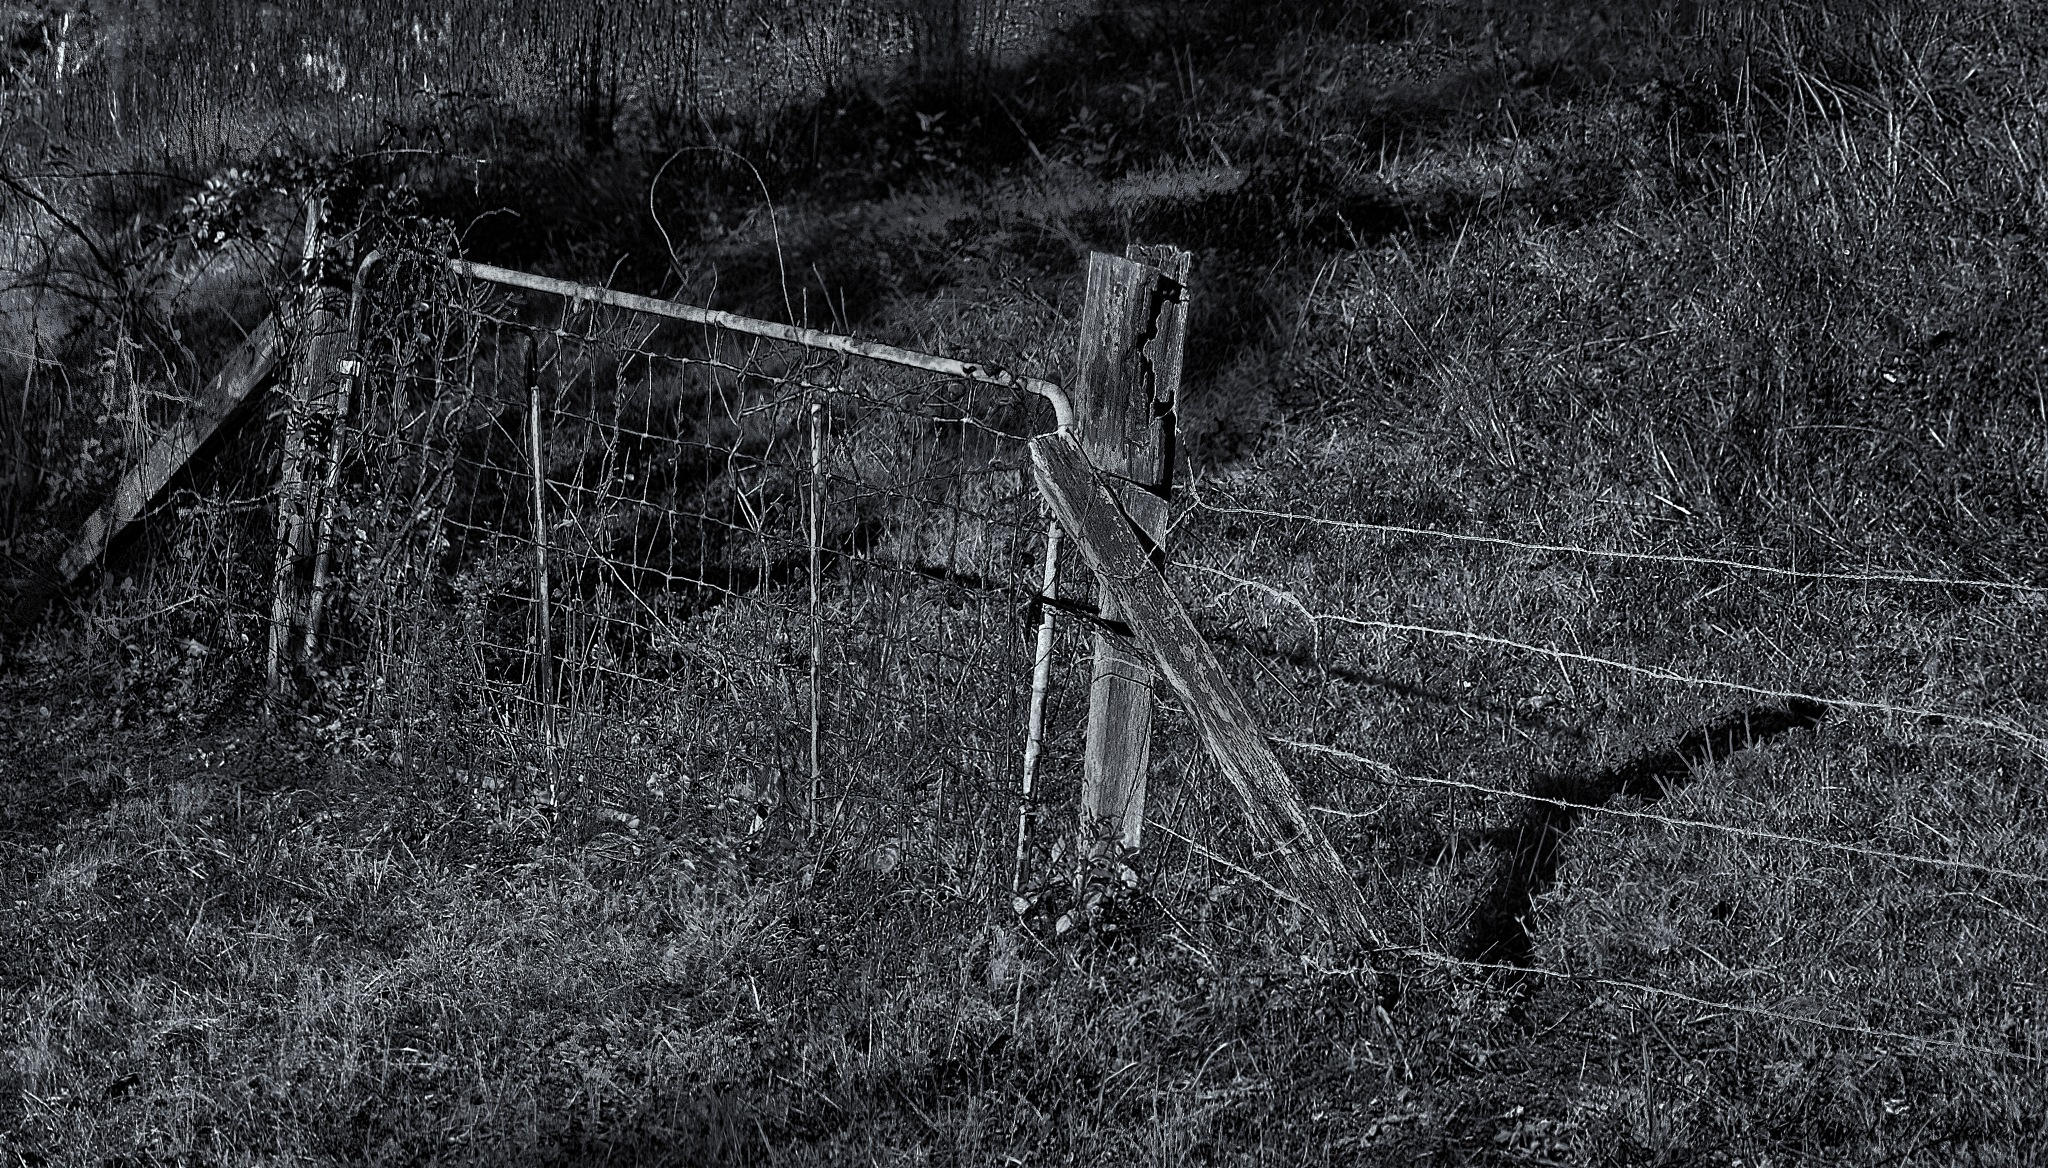 An Old Gate & Barbed Wire by danphares